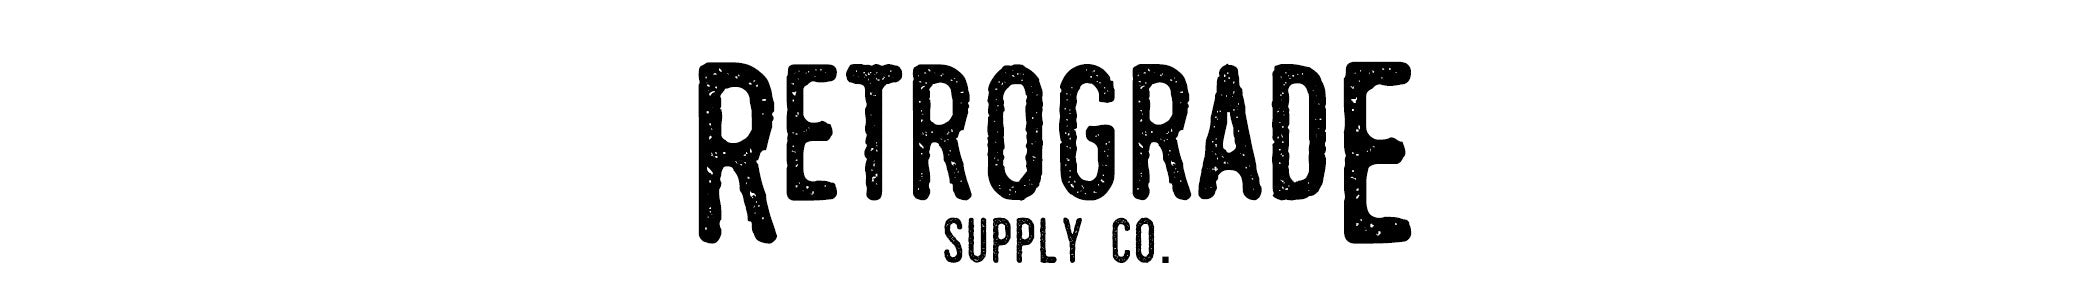 Retrograde Supply Co